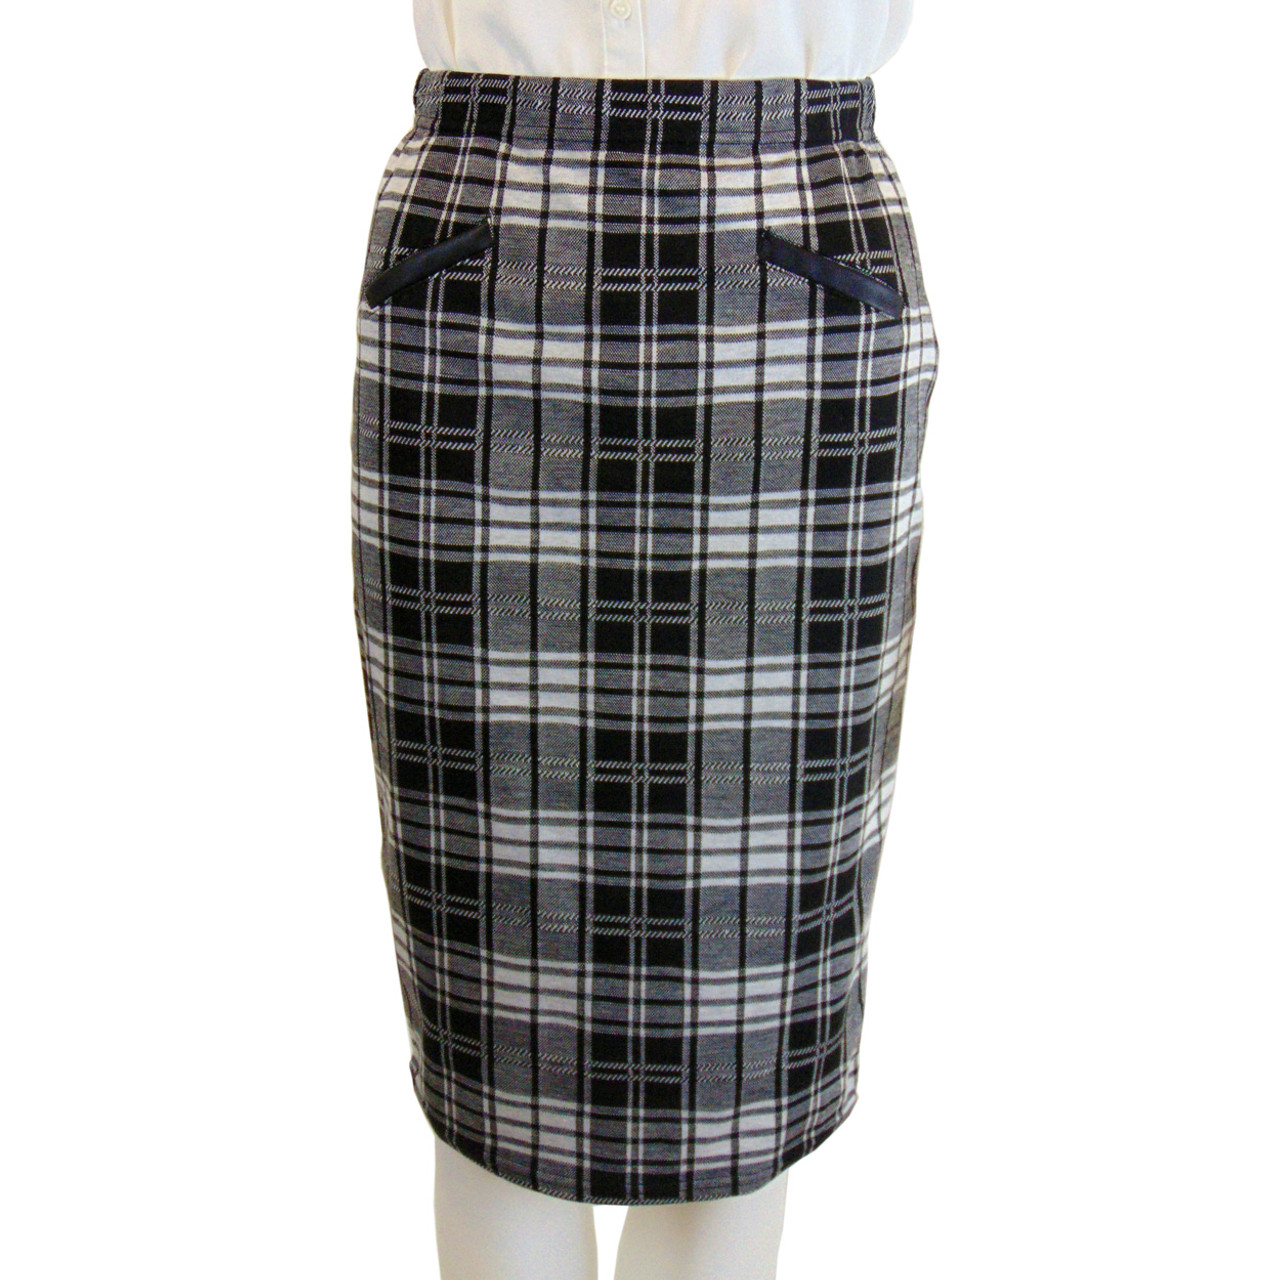 aed5b61cac3a NEW Suzy Shier White and Black Plaid Skirt Size S